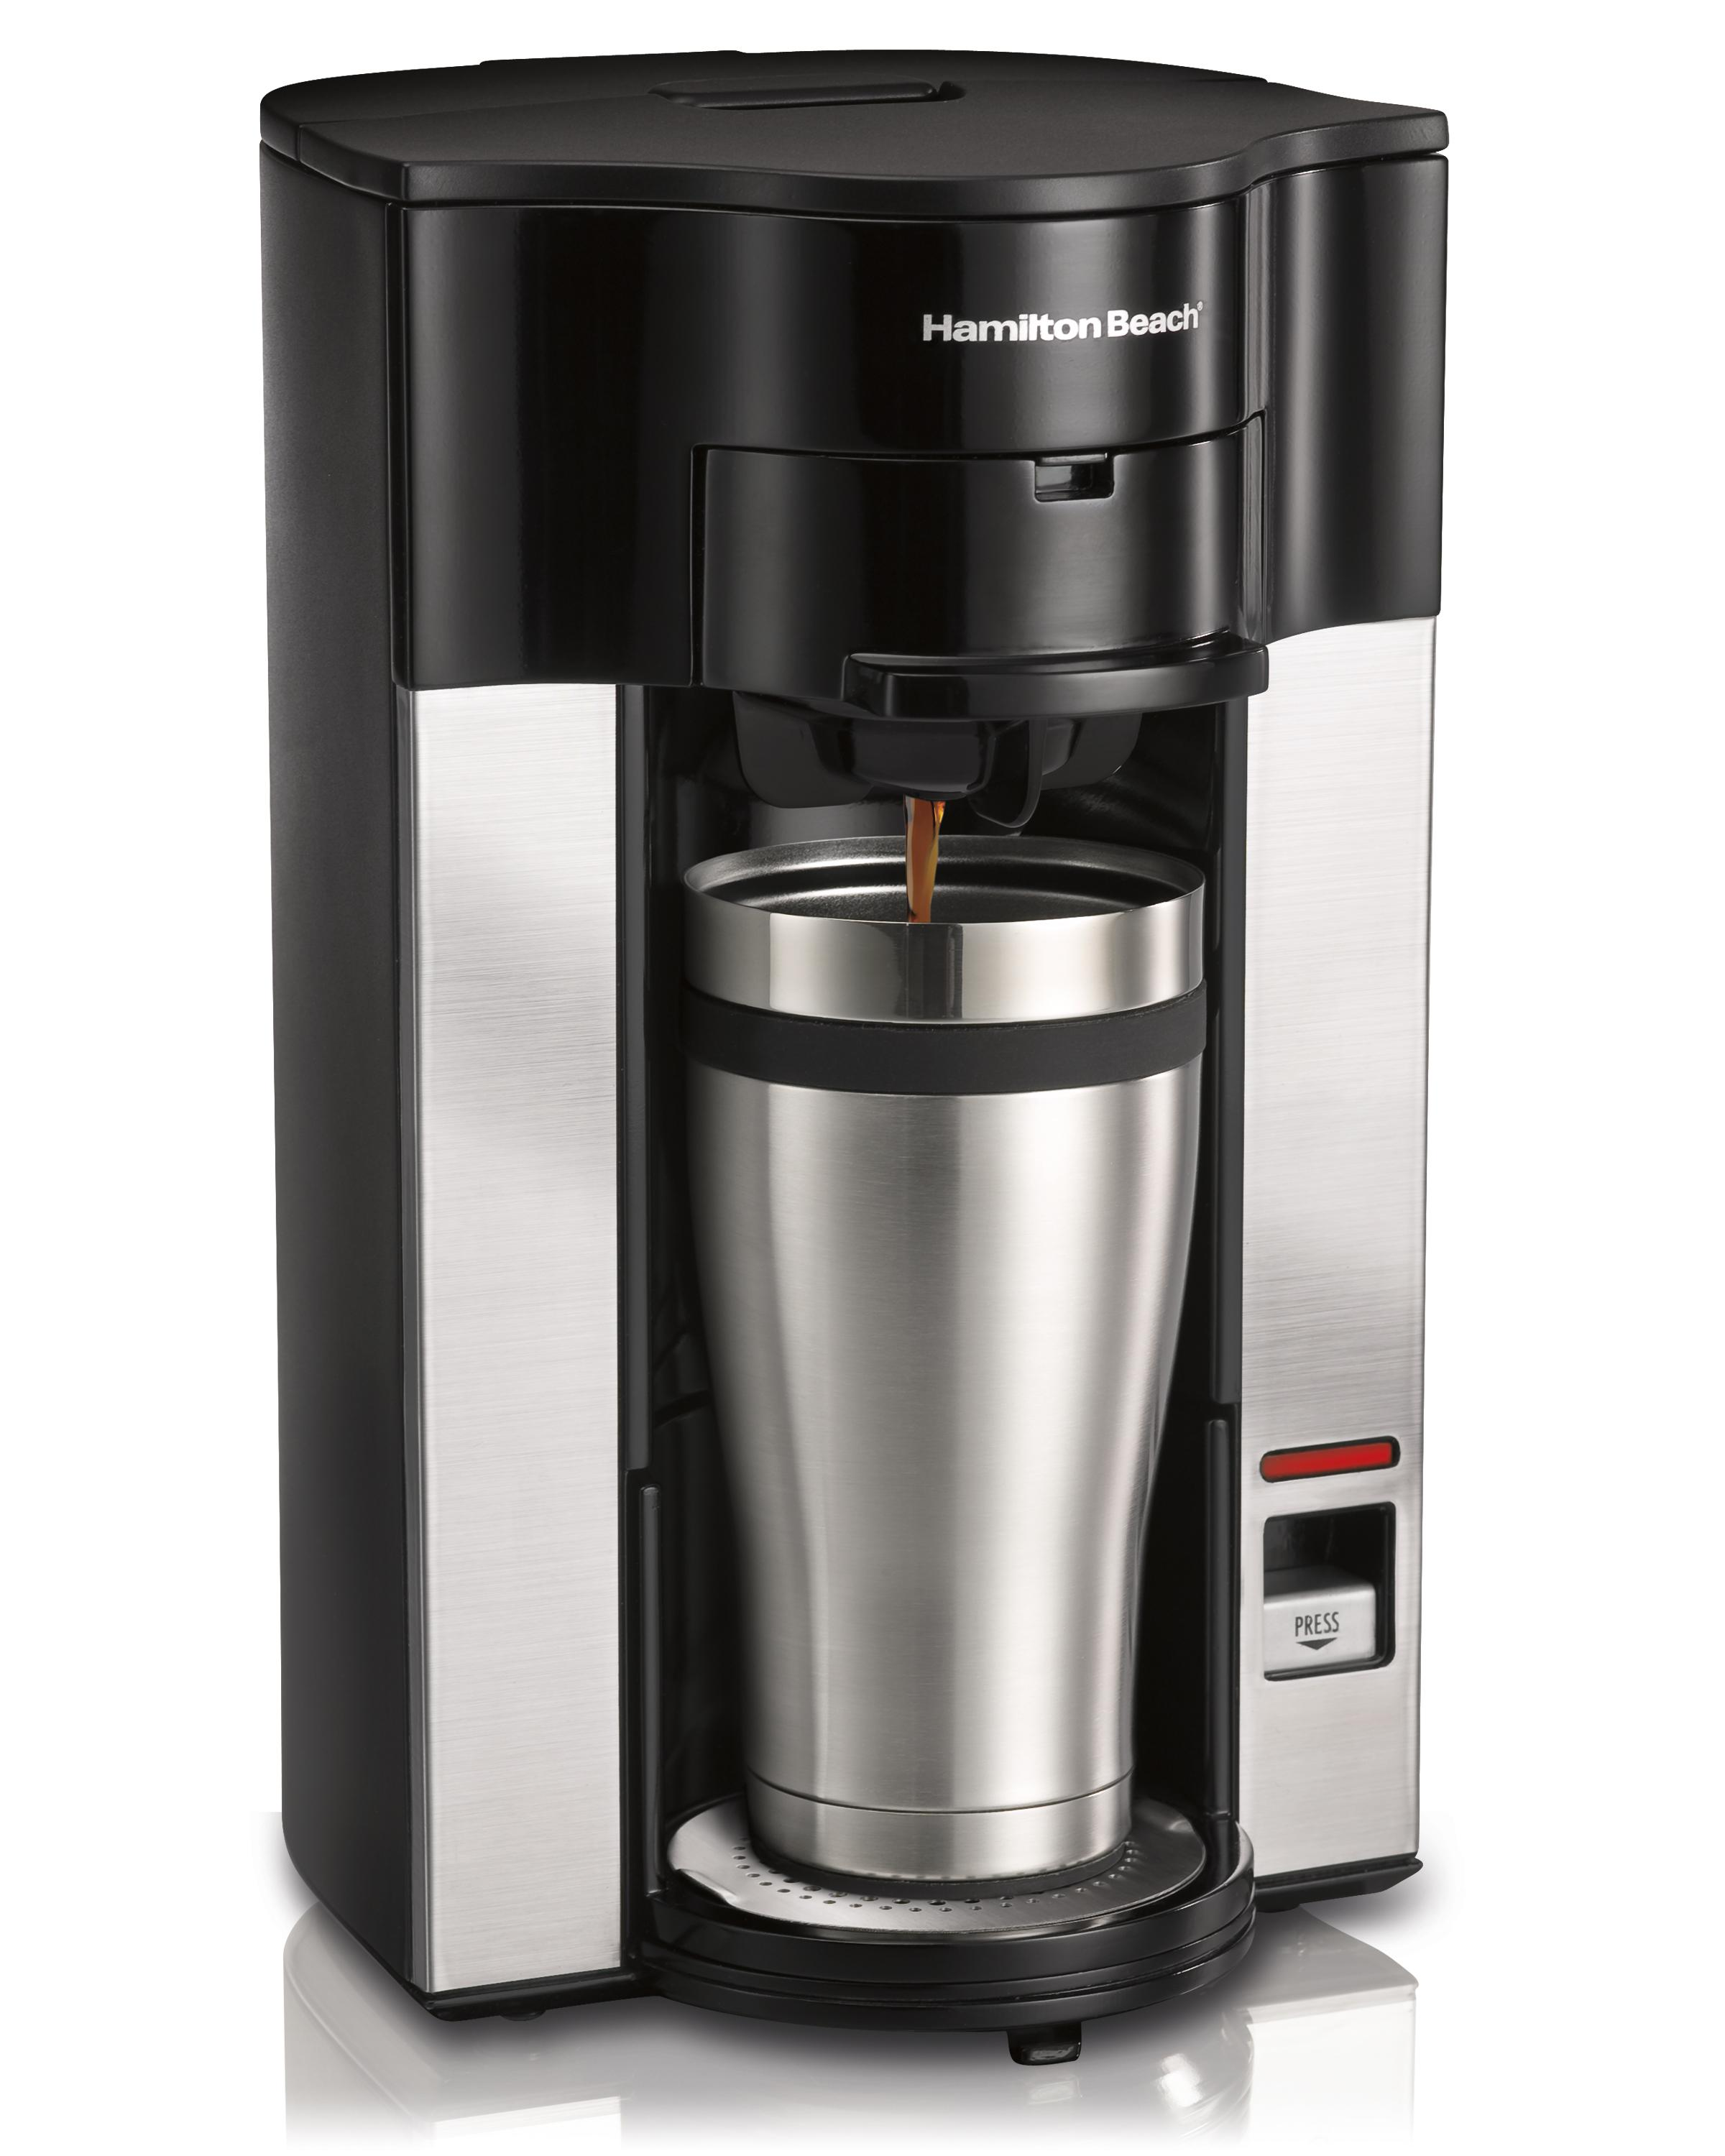 Hamilton Beach 1Cup Coffee Maker Brewer W/8 Senseo POD 40094499908 eBay